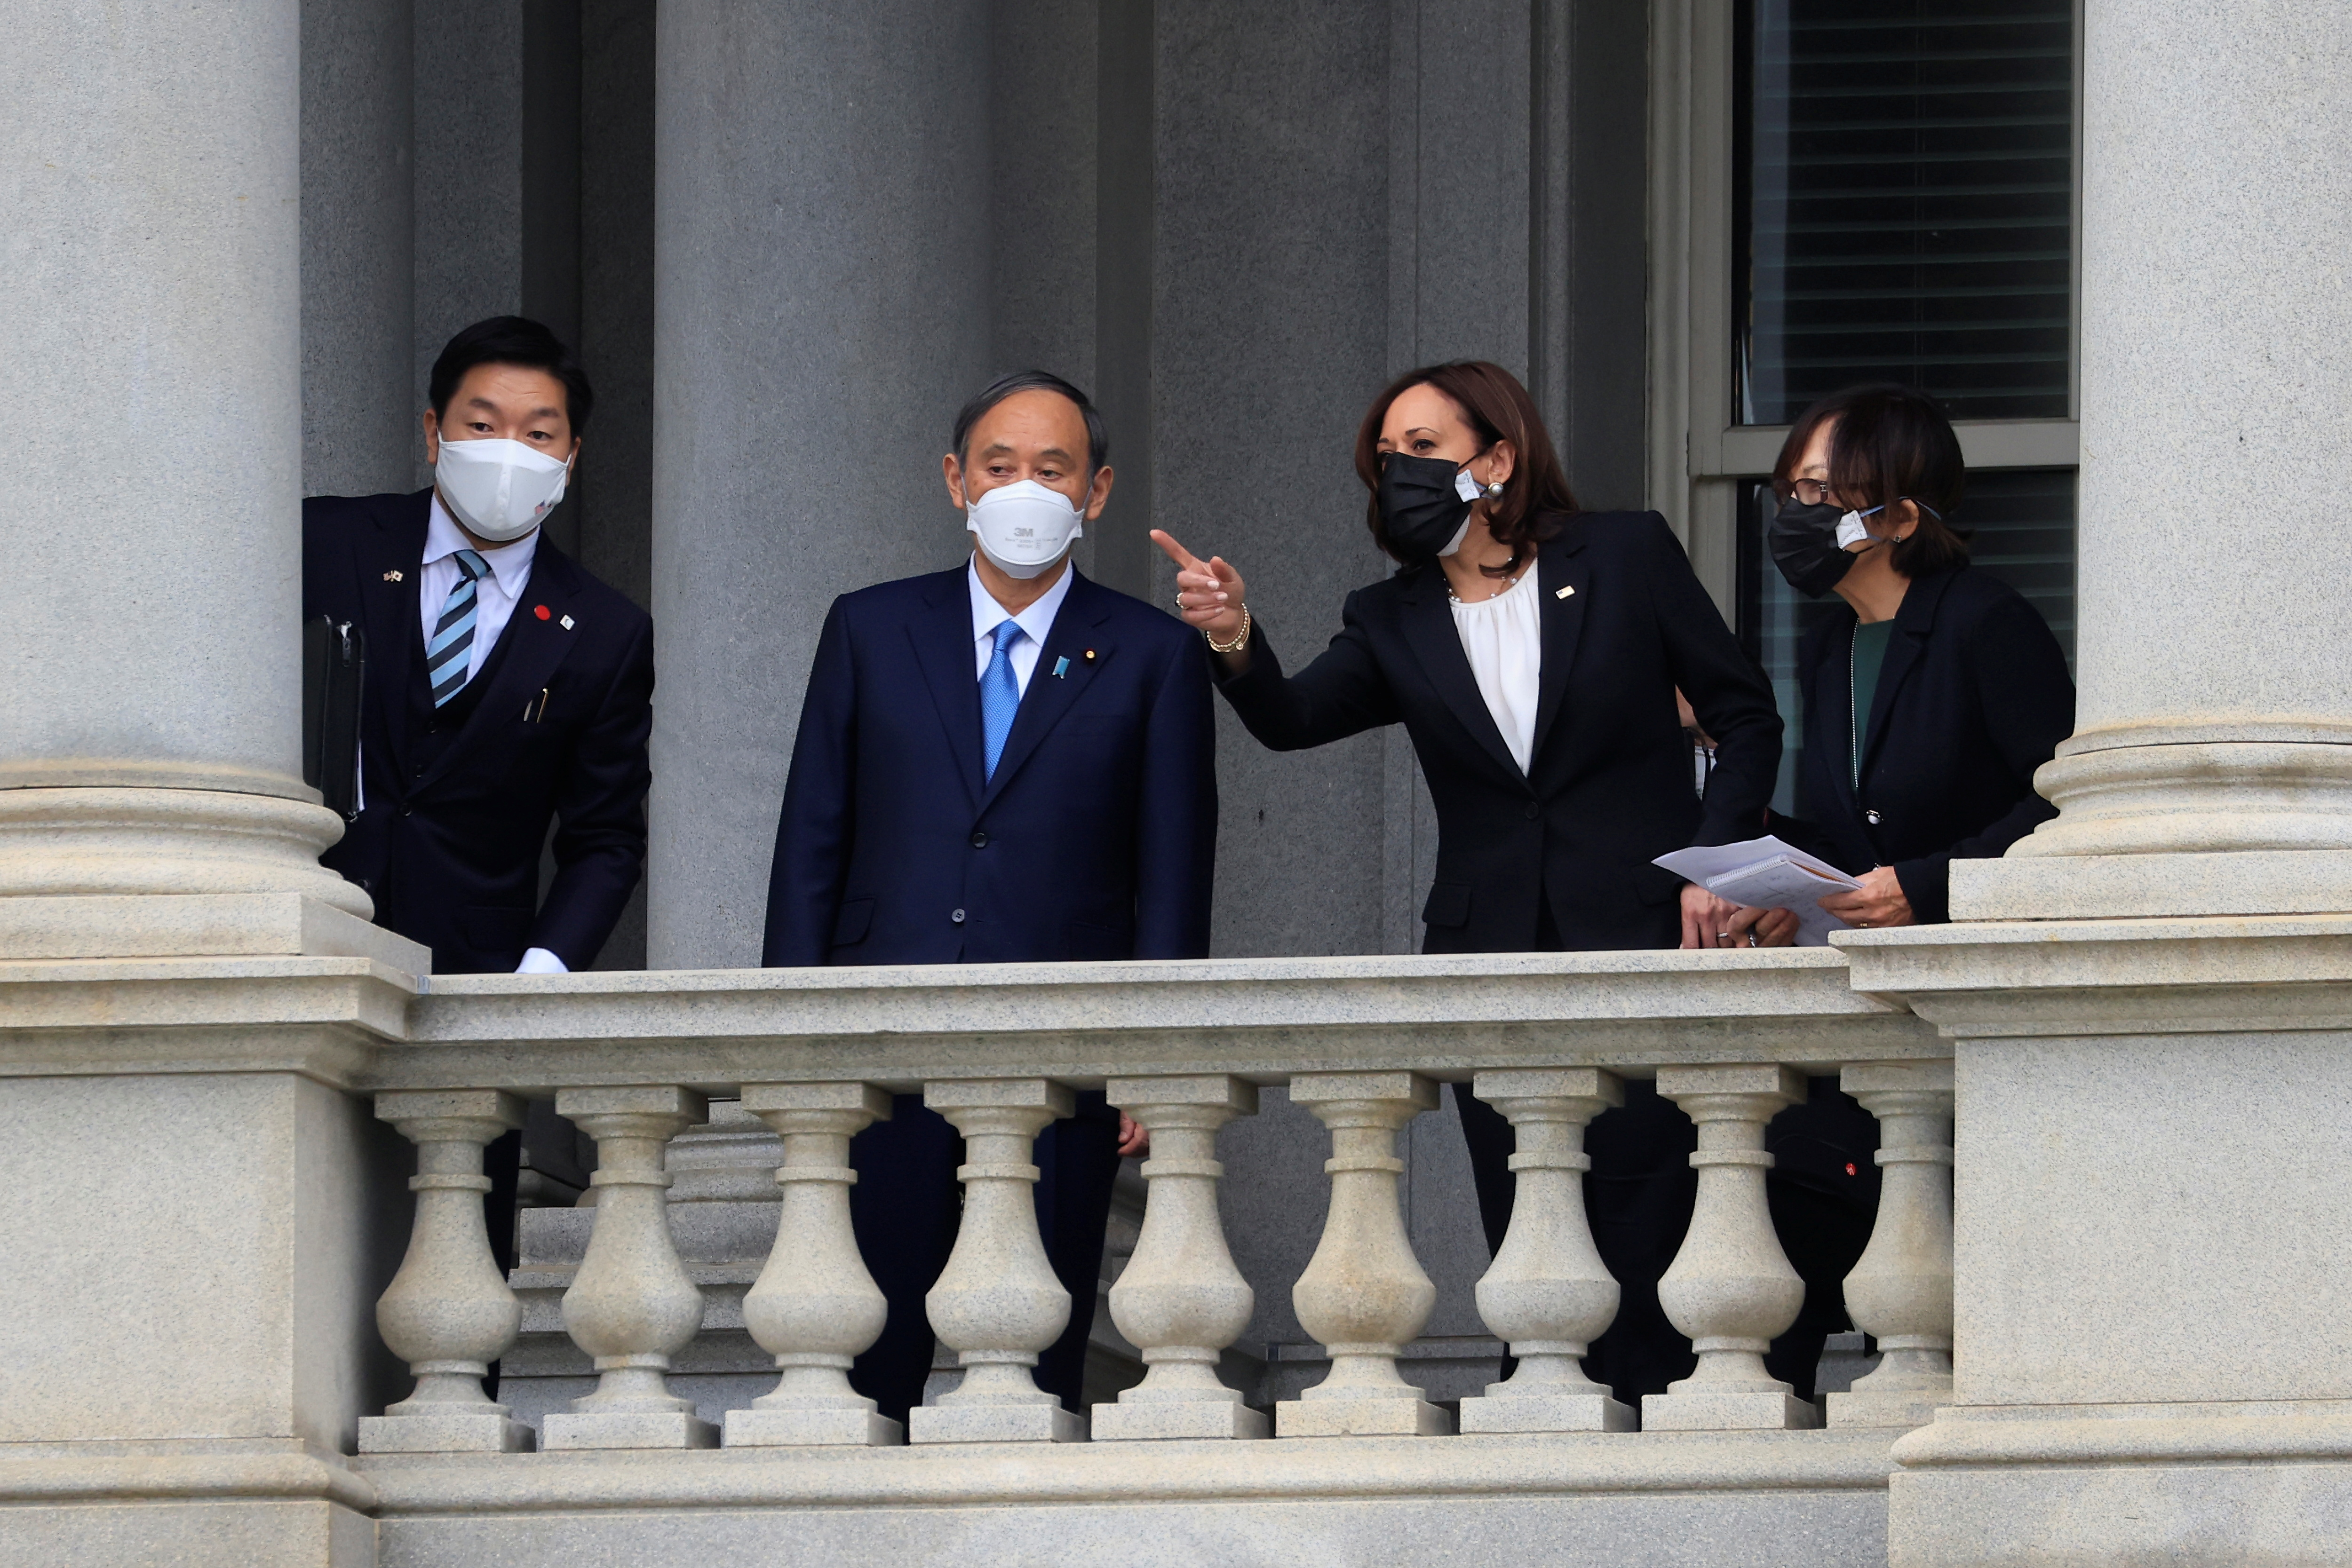 U.S. Vice President Kamala Harris and Japan?s Prime Minister Yoshihide Suga speak on a balcony at the Eisenhower Executive Office Building following a meeting at the White House in Washington, U.S., April 16, 2021. REUTERS/Tom Brenner